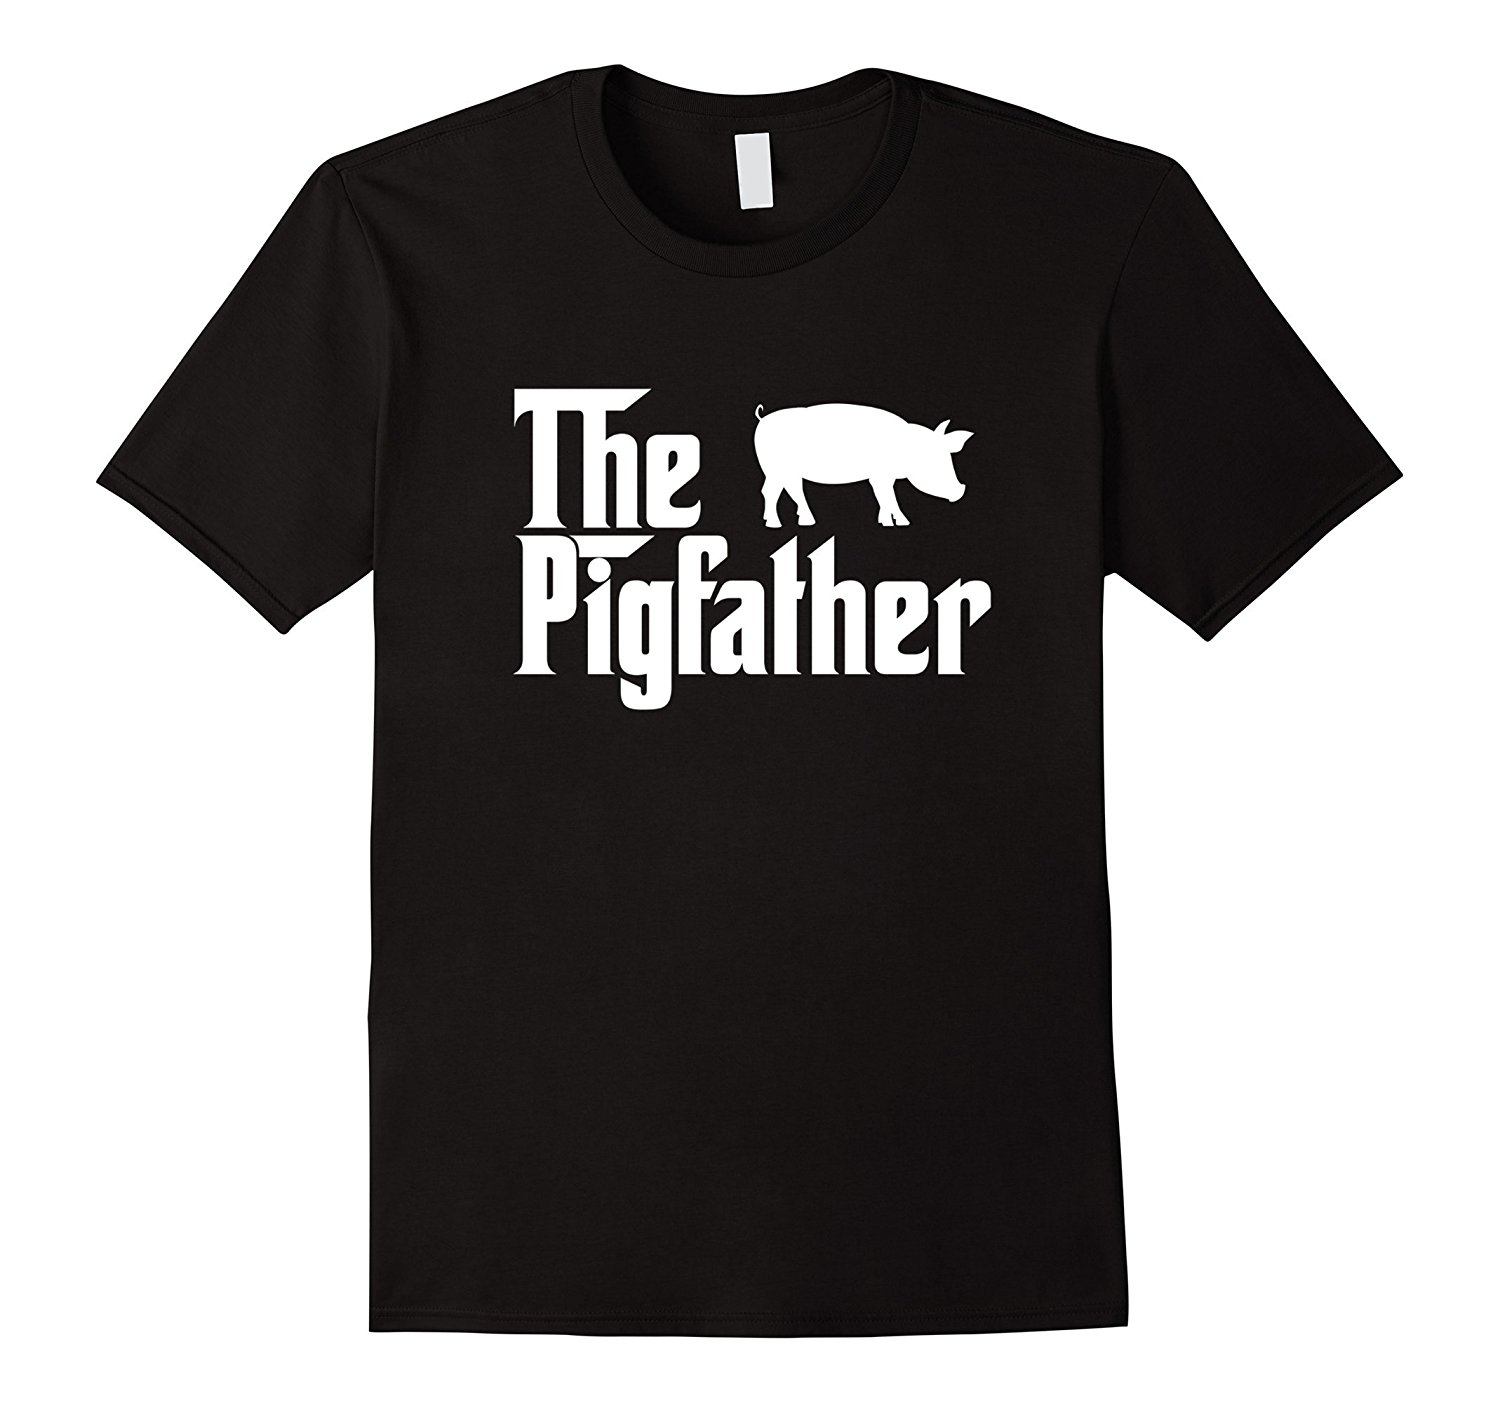 The Pig Father Funny Lover Whisperer T Shirt Gift Men Casual Short Sleeve Shirts T-Shirt Free Shipping Top Tee